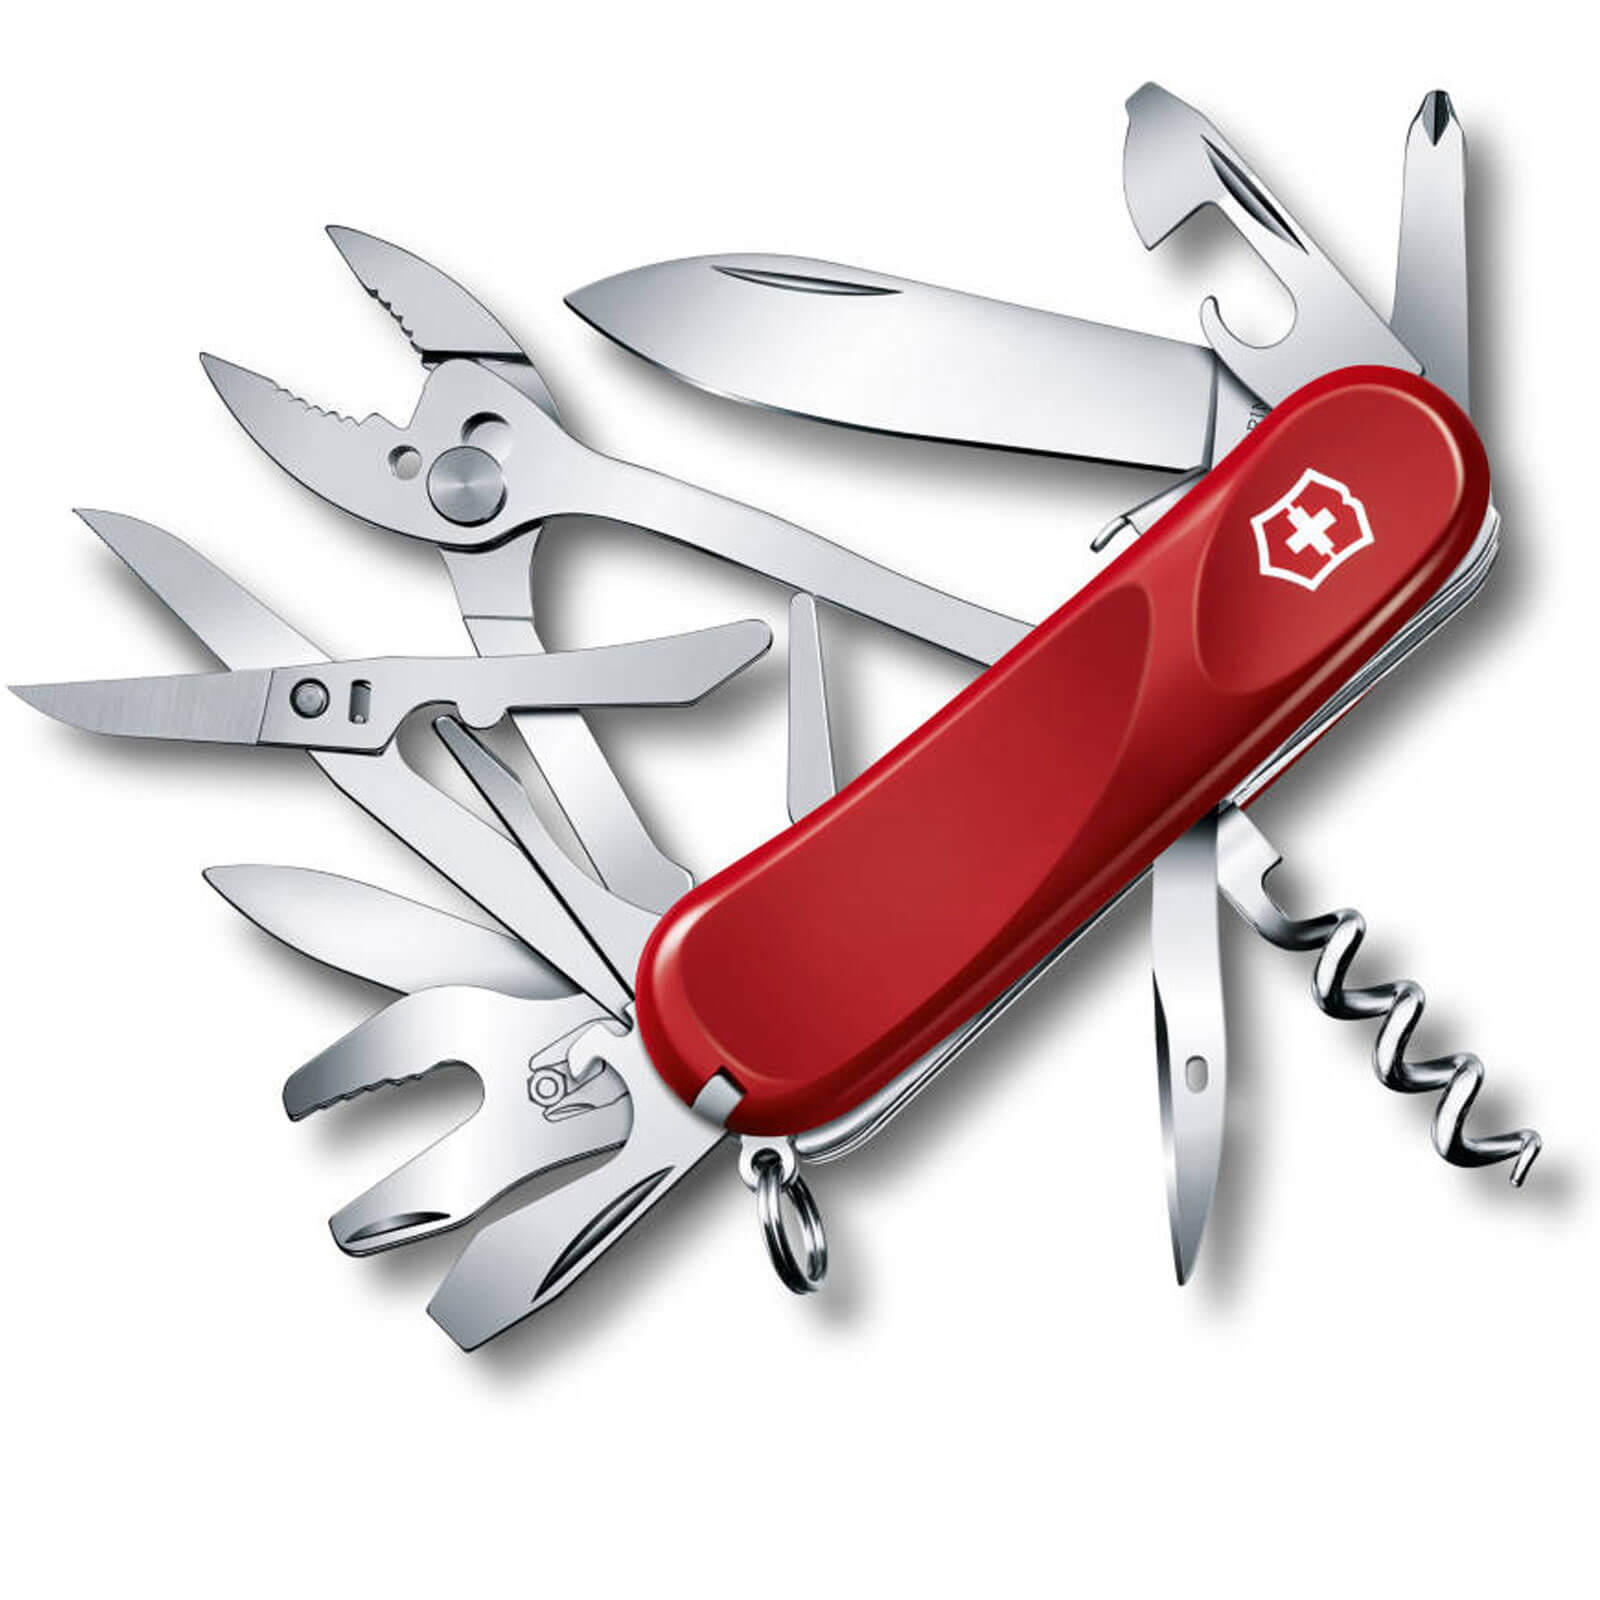 Image of Victorinox Evolution S557 Swiss Army Knife Red